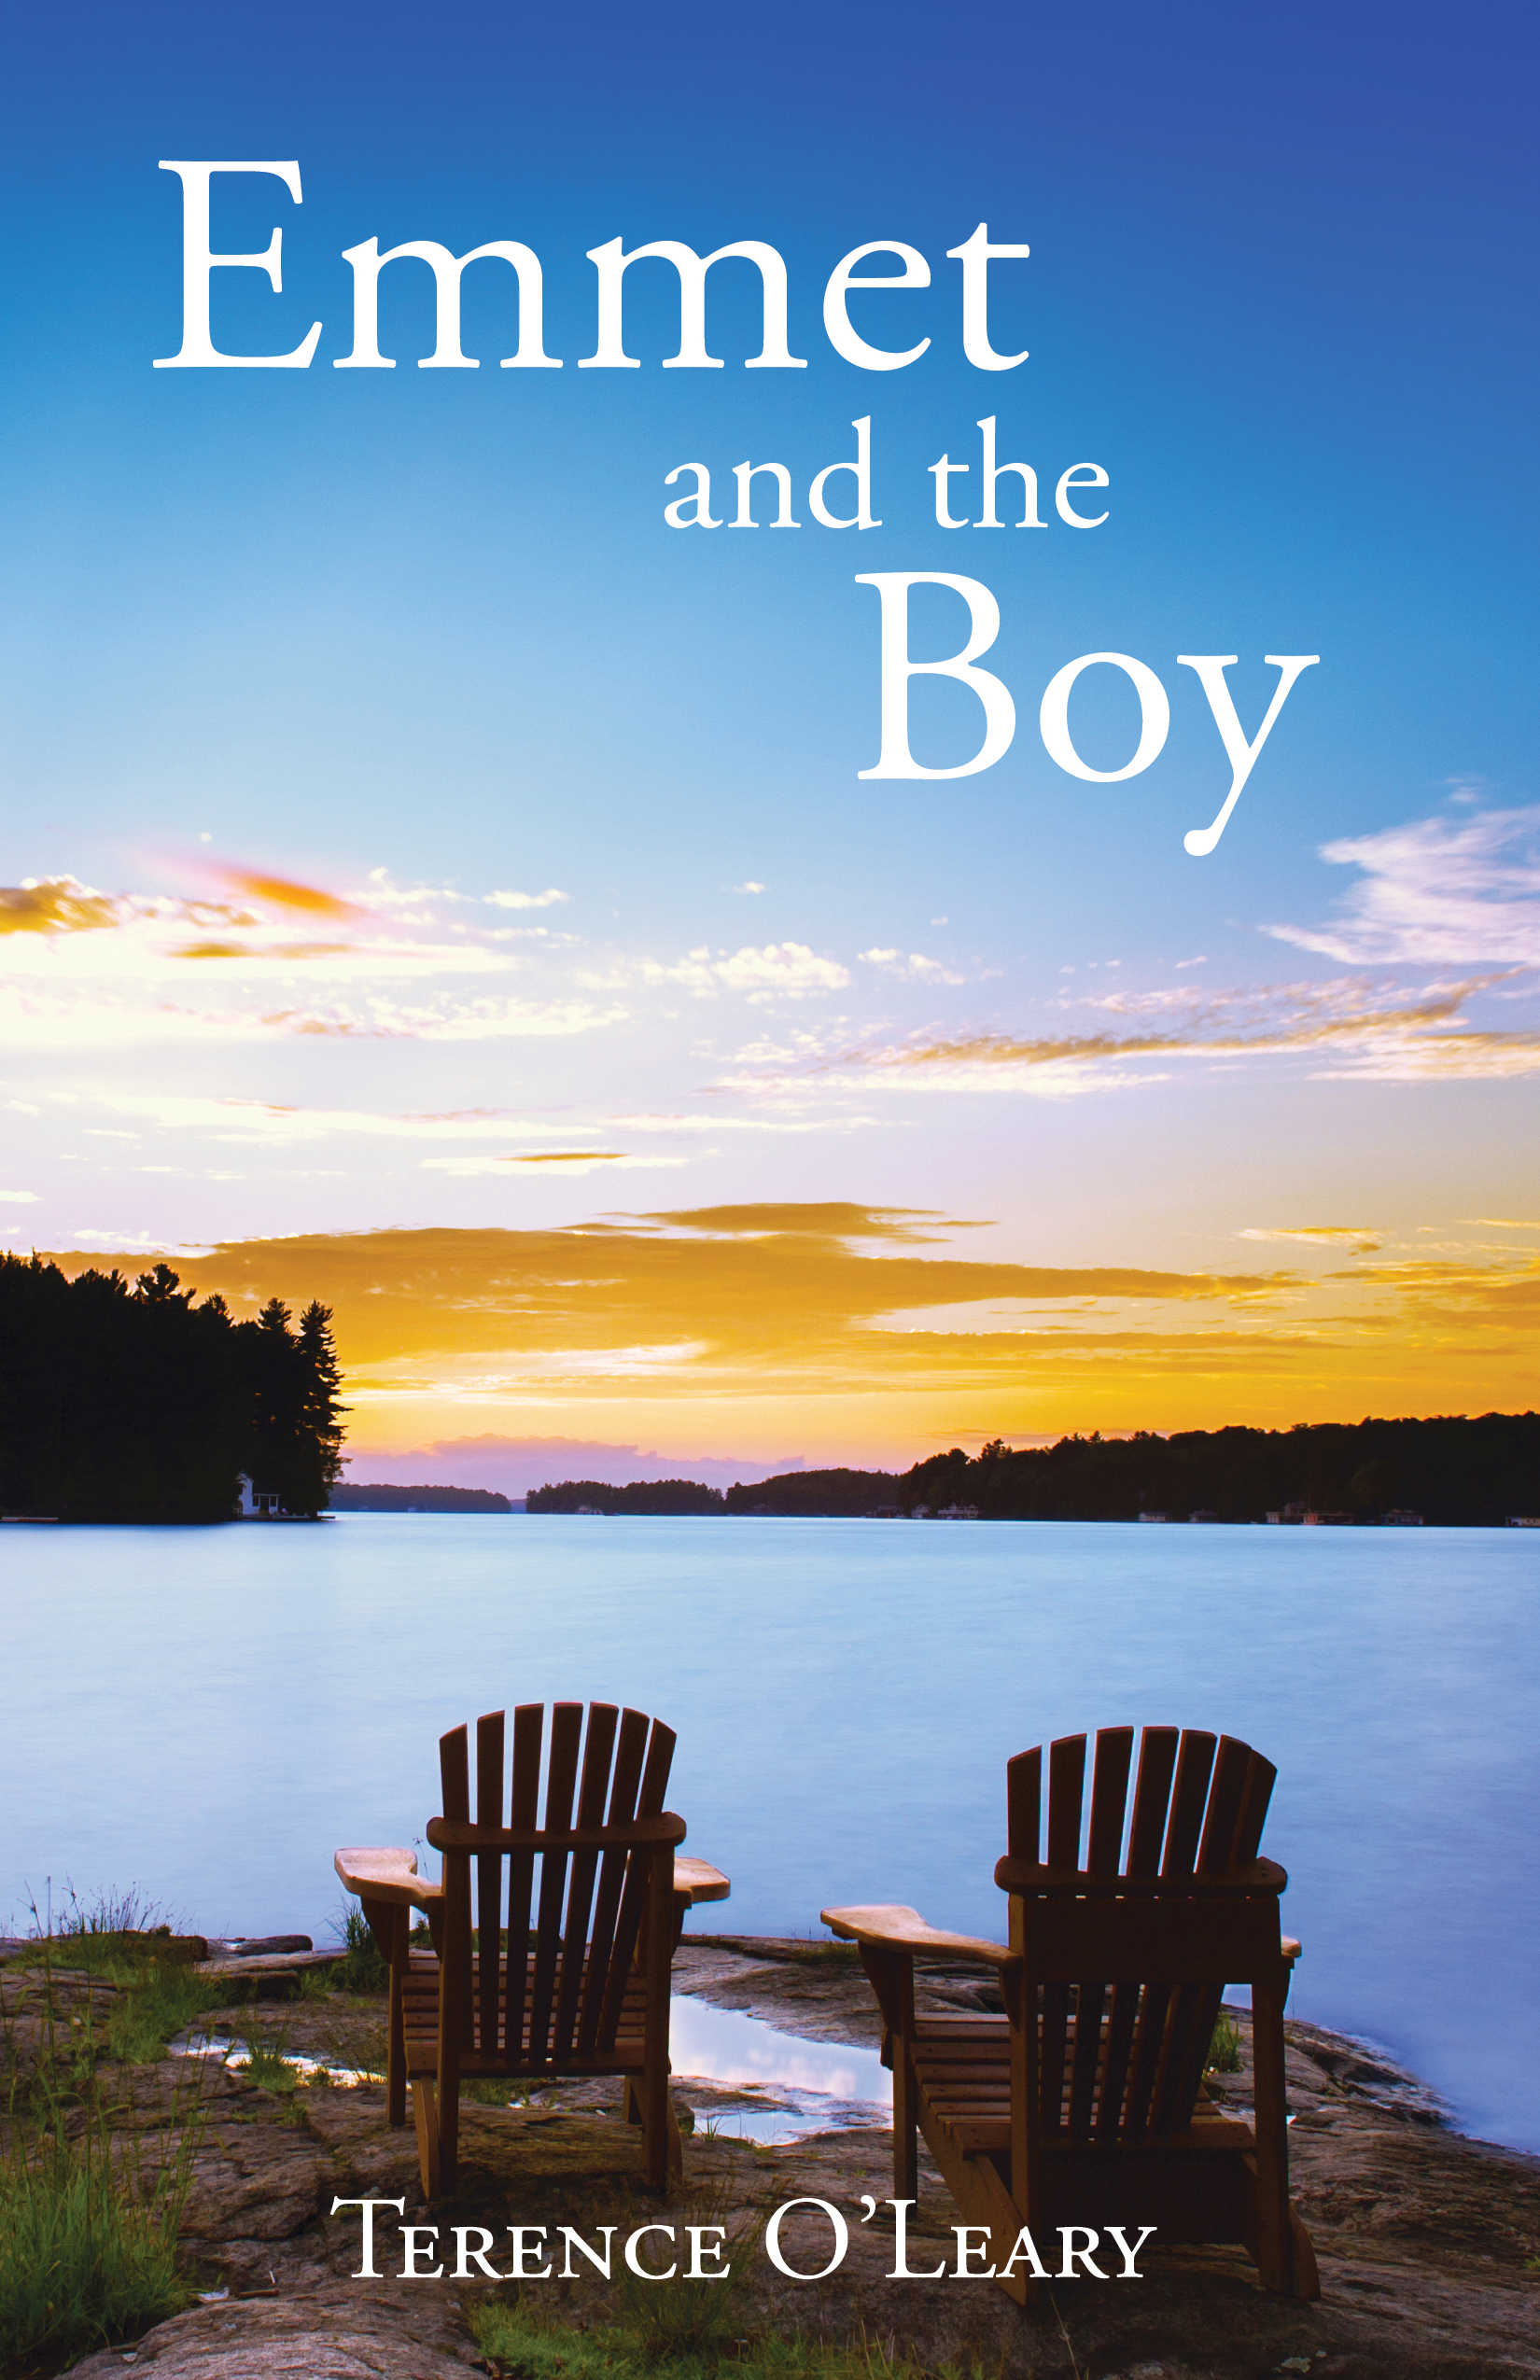 Emmet and the Boy  Available in  paperback  and on  Kindle .  Cover artwork and interior layout design provided by Cover&Layout